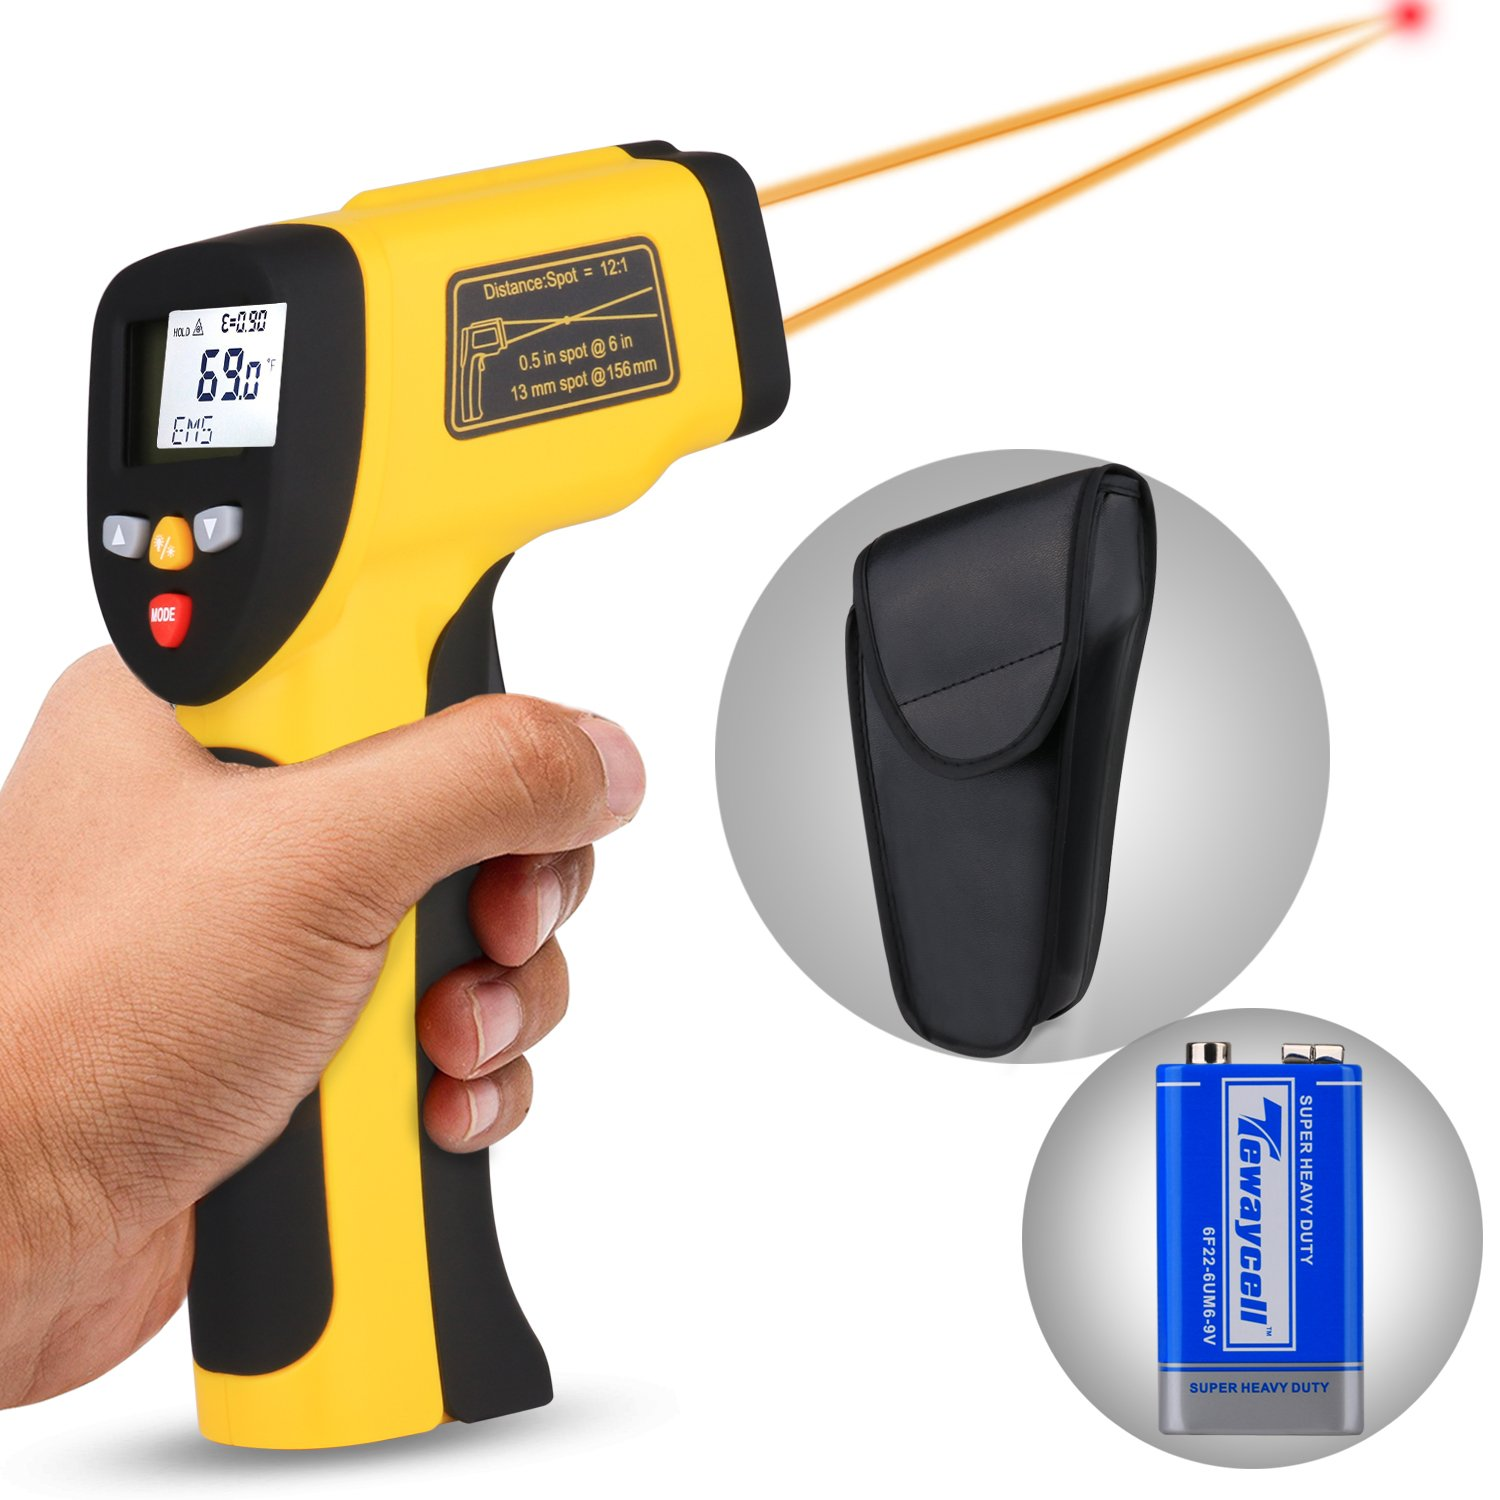 Dual Laser Infrared Thermometer, Zenic Professional Non-Contact Digital Temperature Measuring Gun with Adjustable Emissivity for Cooking / Brewing / Automobile & Industries, -50-650℃, D:S=12:1